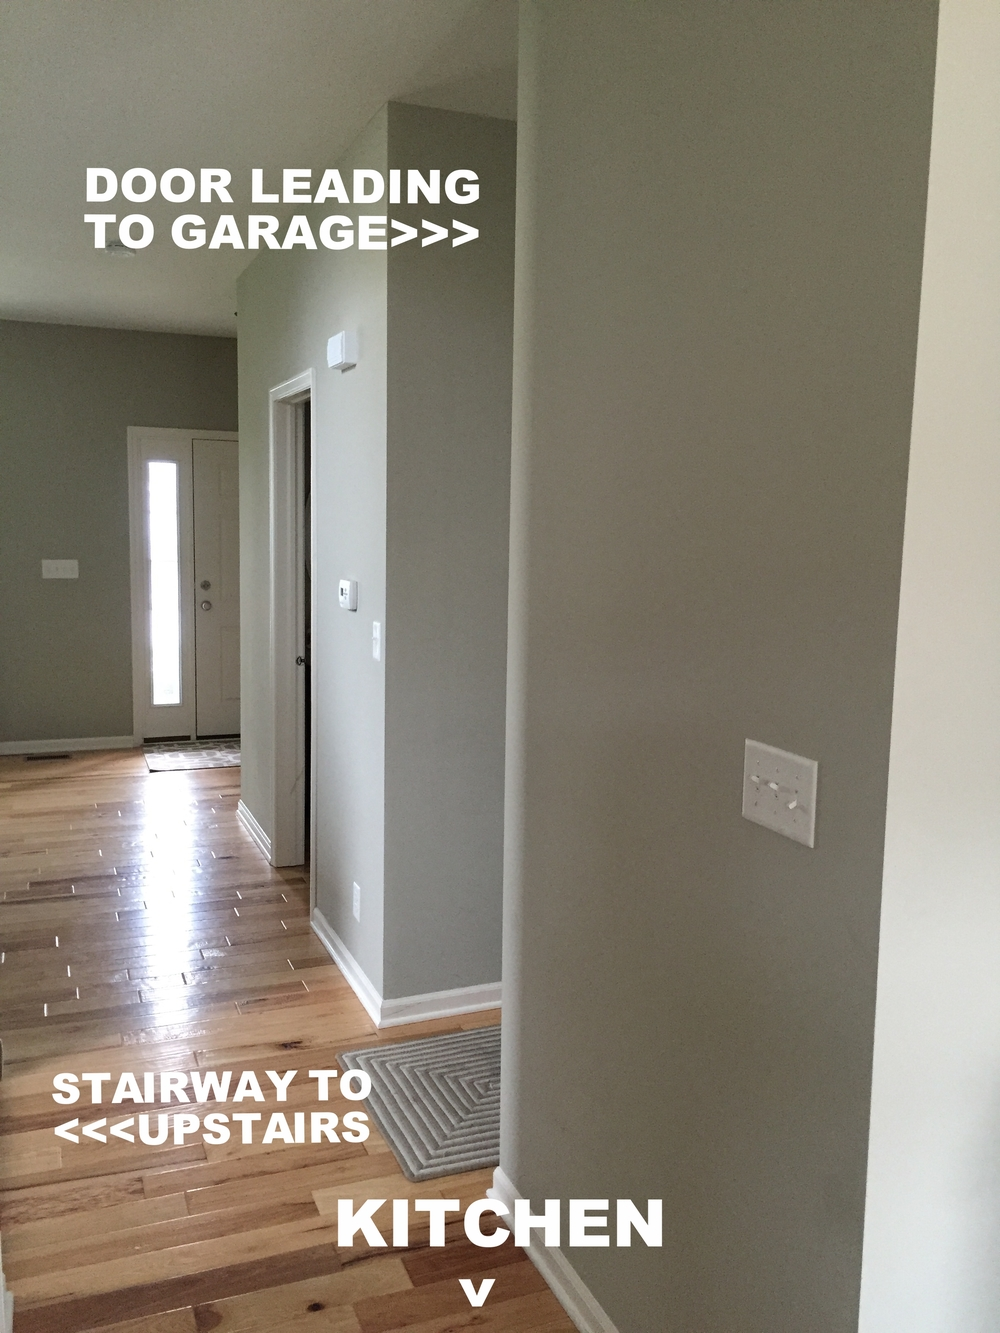 This blank wall was the perfect spot for our project. It's right around the corner from the garage (which is our most commonly used entrance), it's right at the bottom of the stairway to the second floor, and it's on the way to the kitchen - the heart of our home.